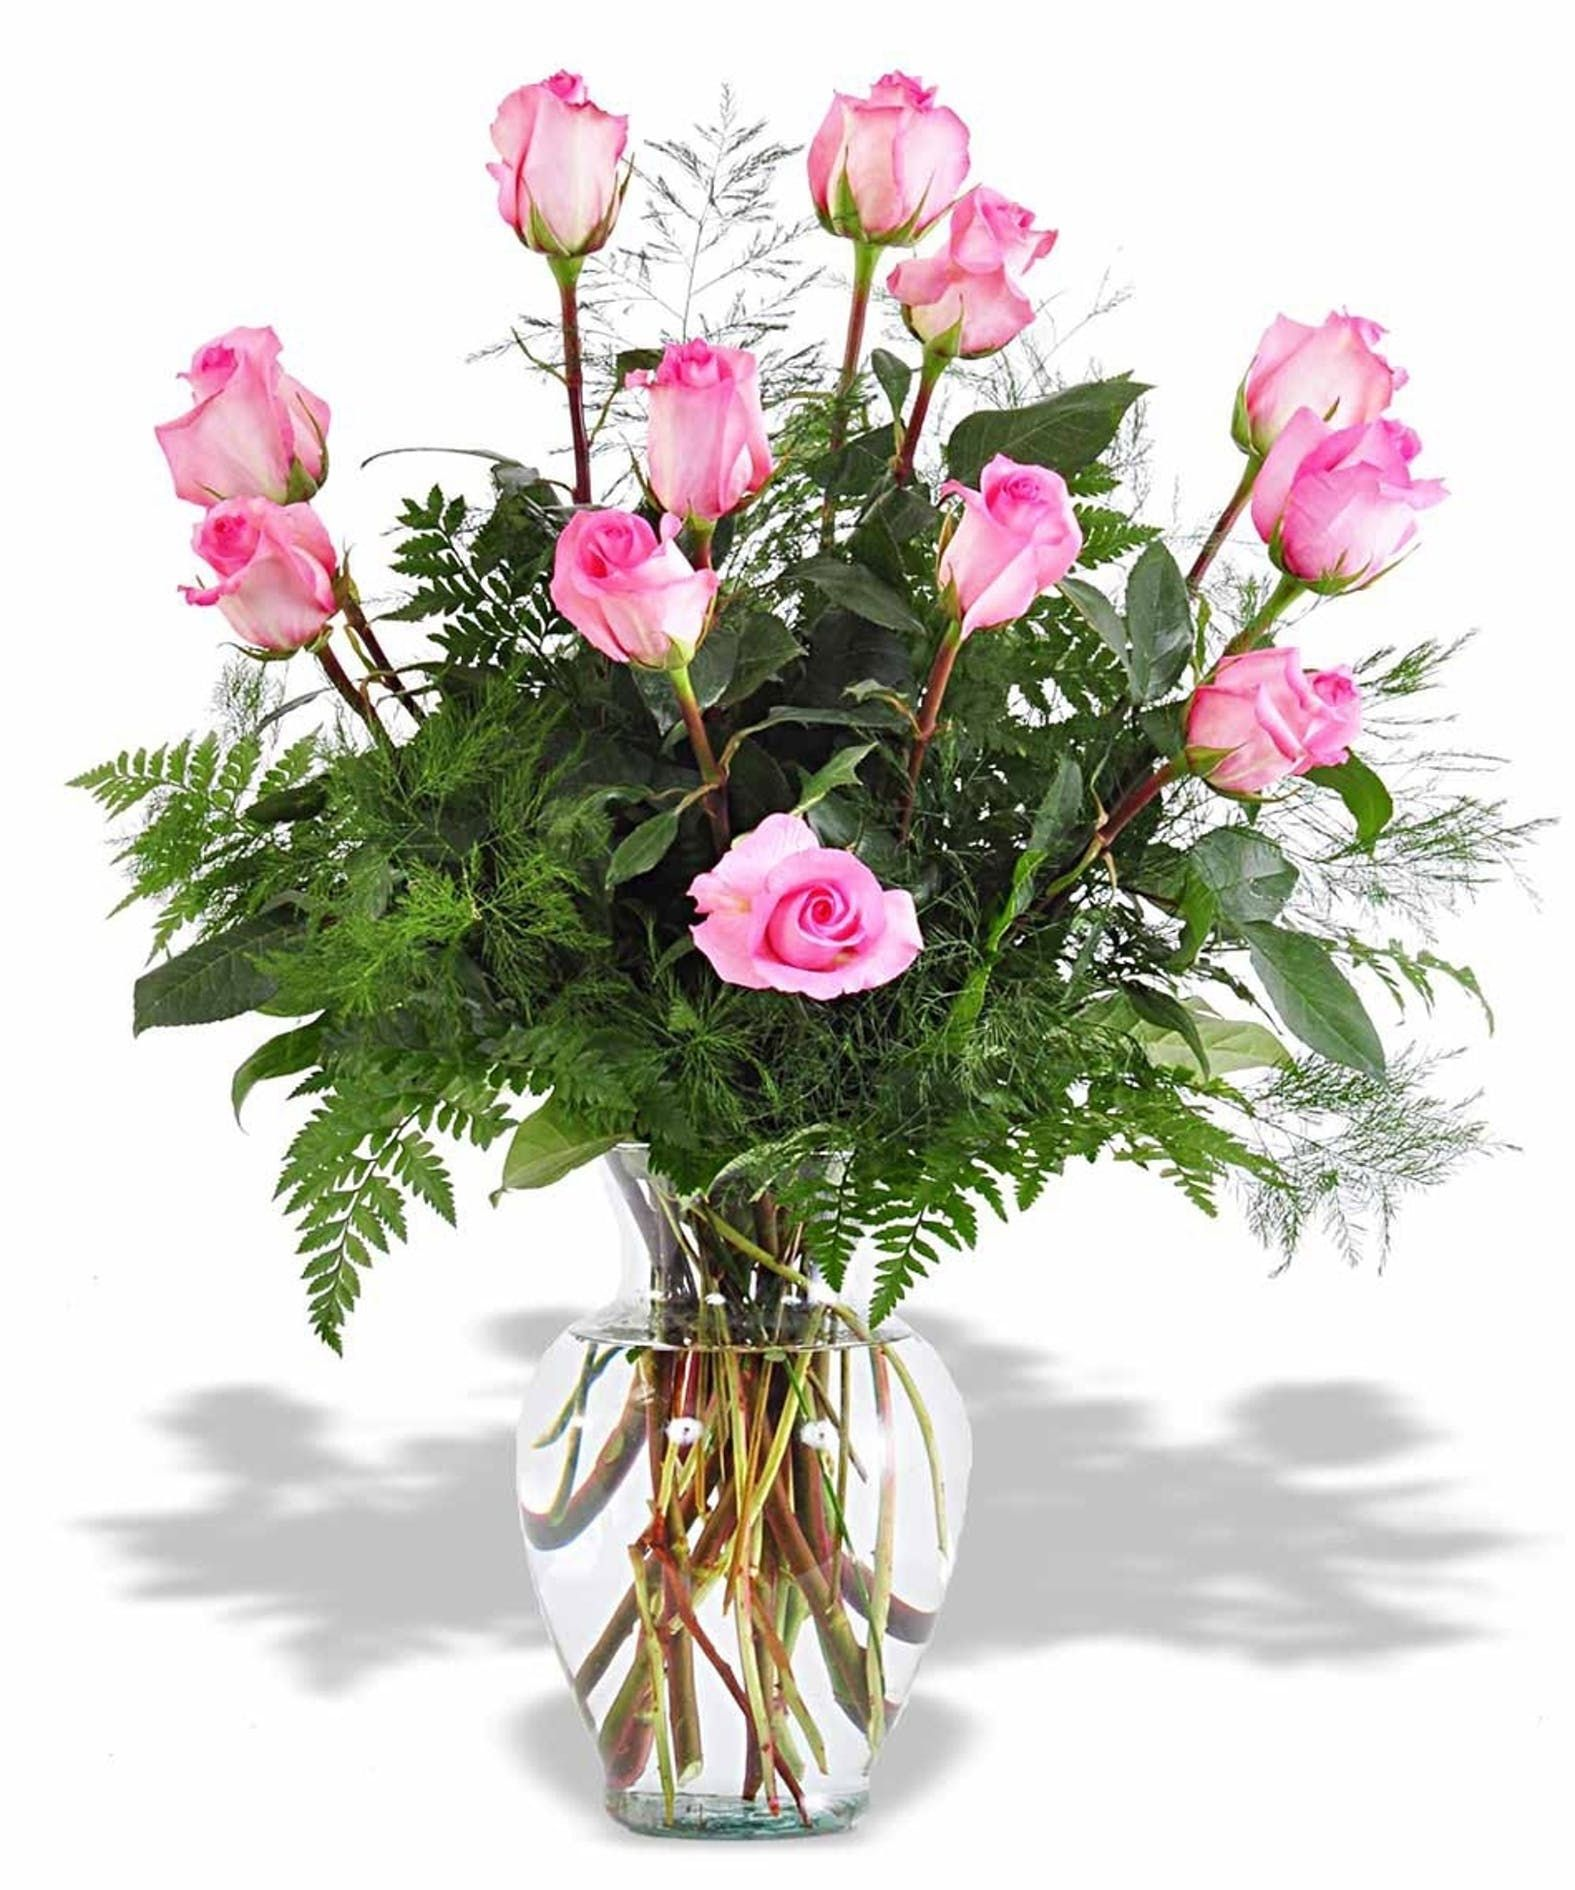 FRESH REAL FLOWERS  Delivered Pink Rose Bouquet Free Flower Delivery